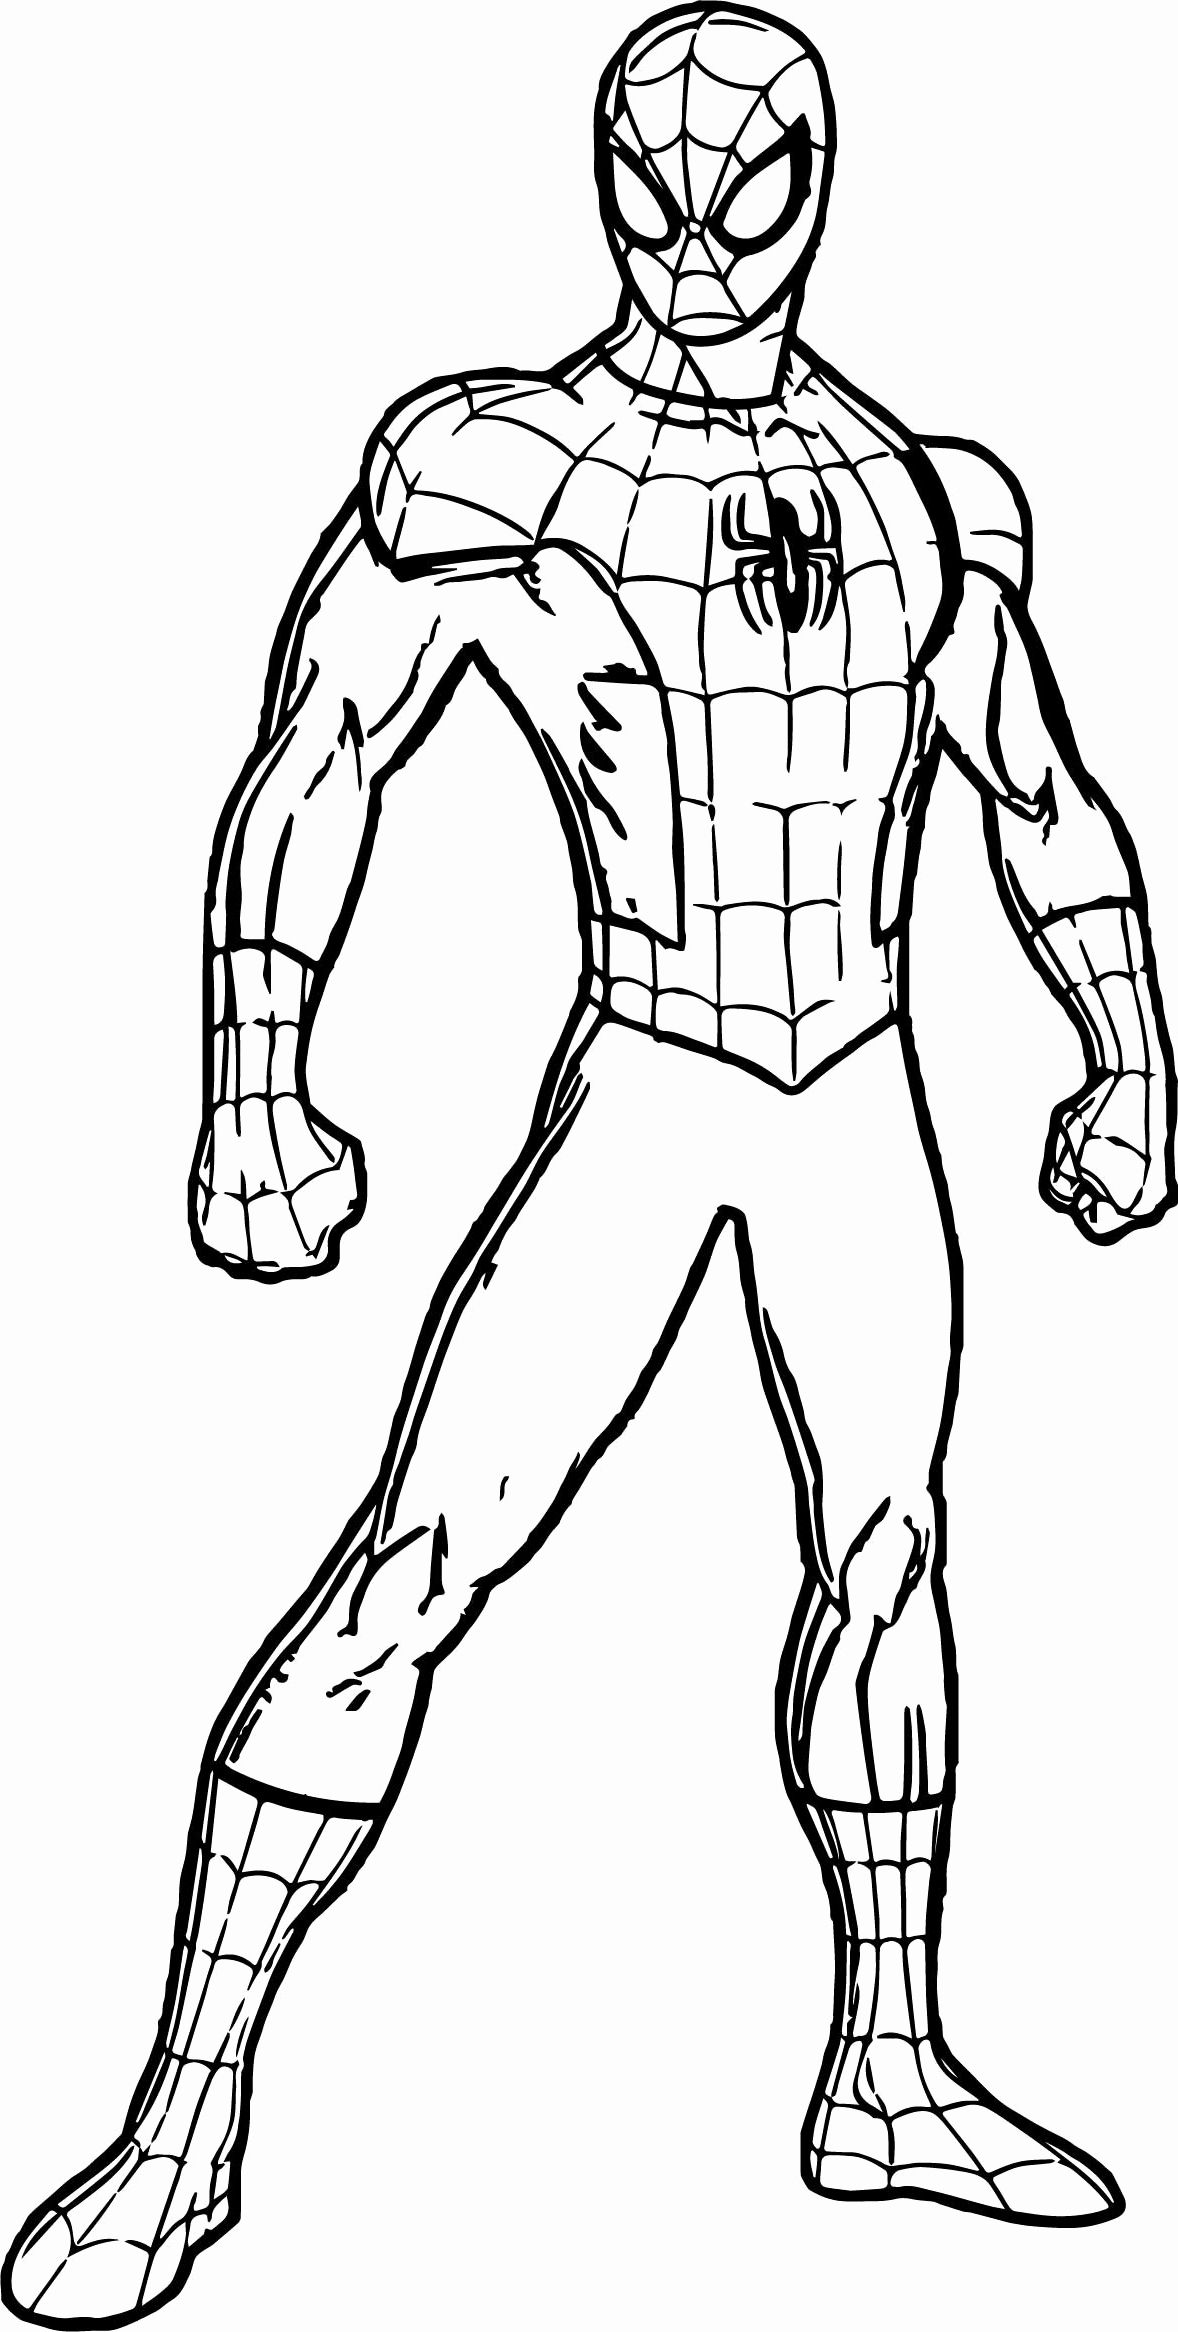 spiderman traceable pin on spiderman coloring pages for kids traceable spiderman